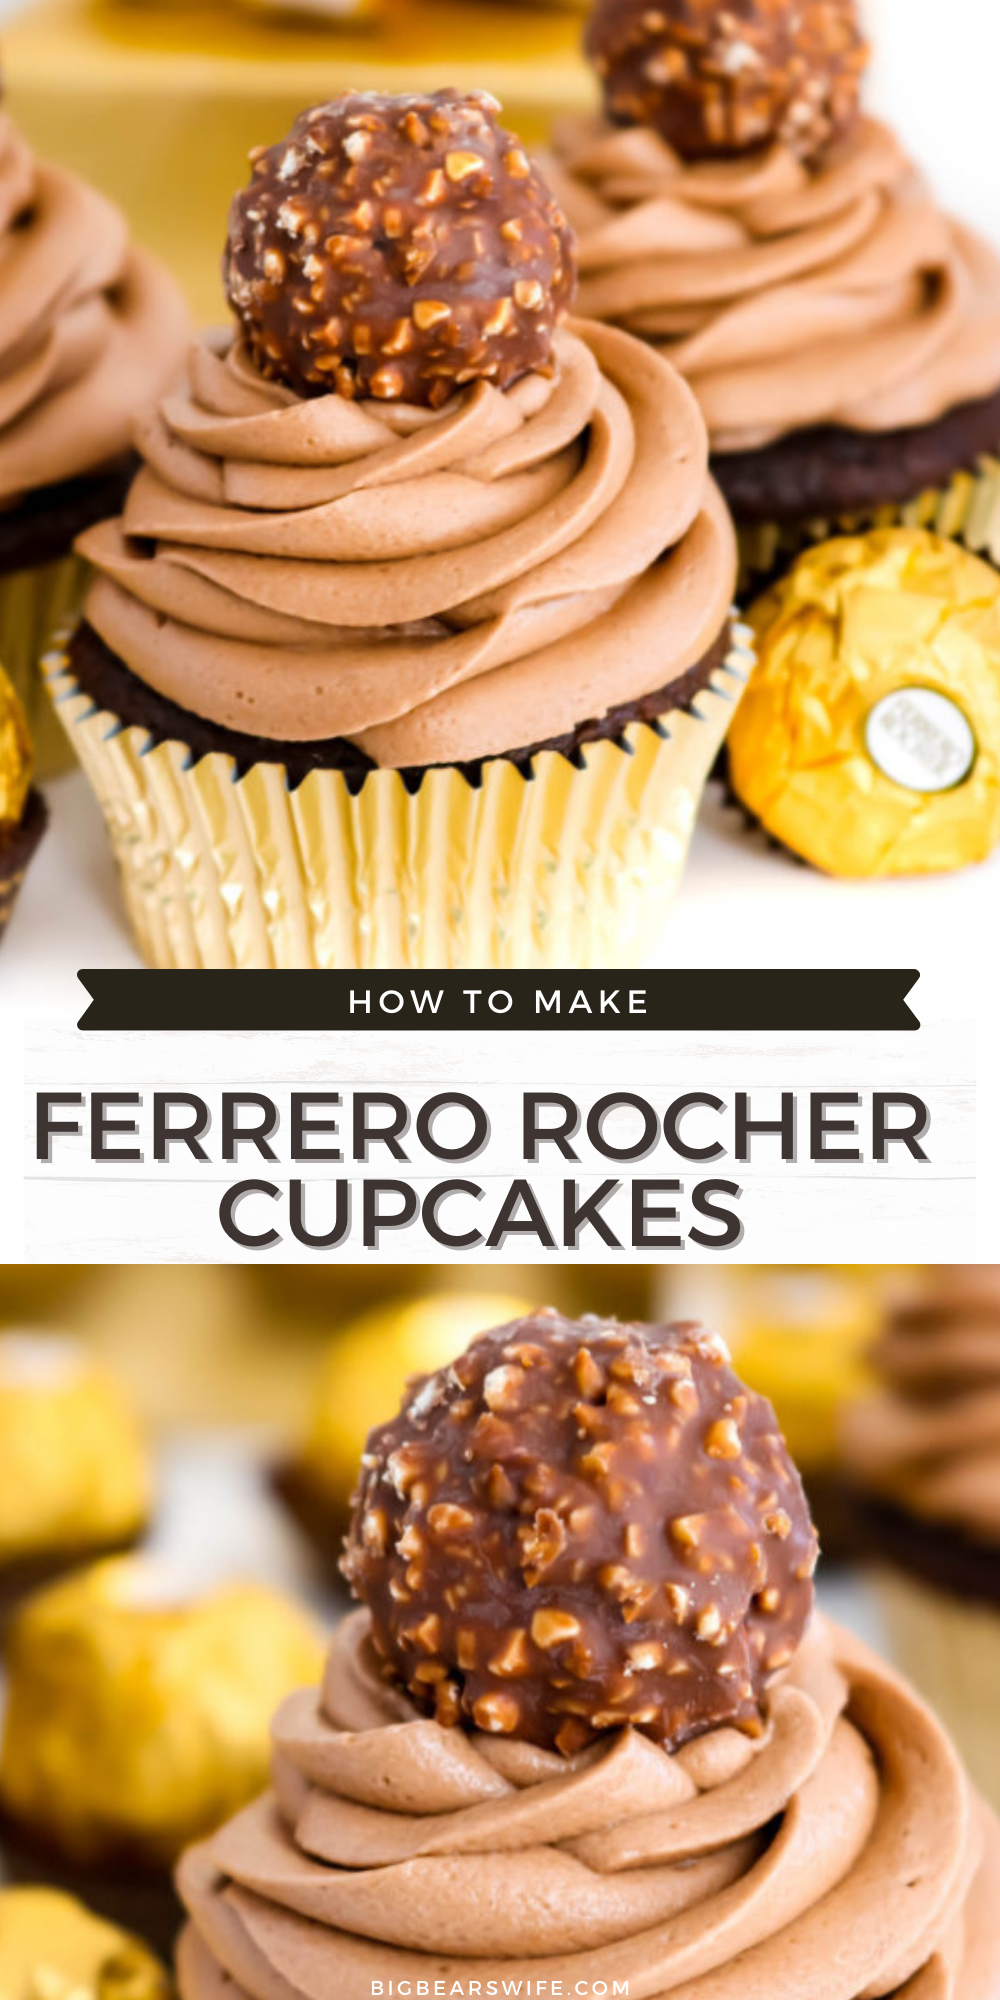 Love Ferrero Rocher Candies? Then these Ferrero Rocher Cupcakes are going to be your new favorite dessert! Homemade Chocolate cupcakes with a chocolate hazelnut frosting is topped with a Ferrero Rocher Chocolate and dressed in a gold cupcake liner for the most elegant cupcake ever.